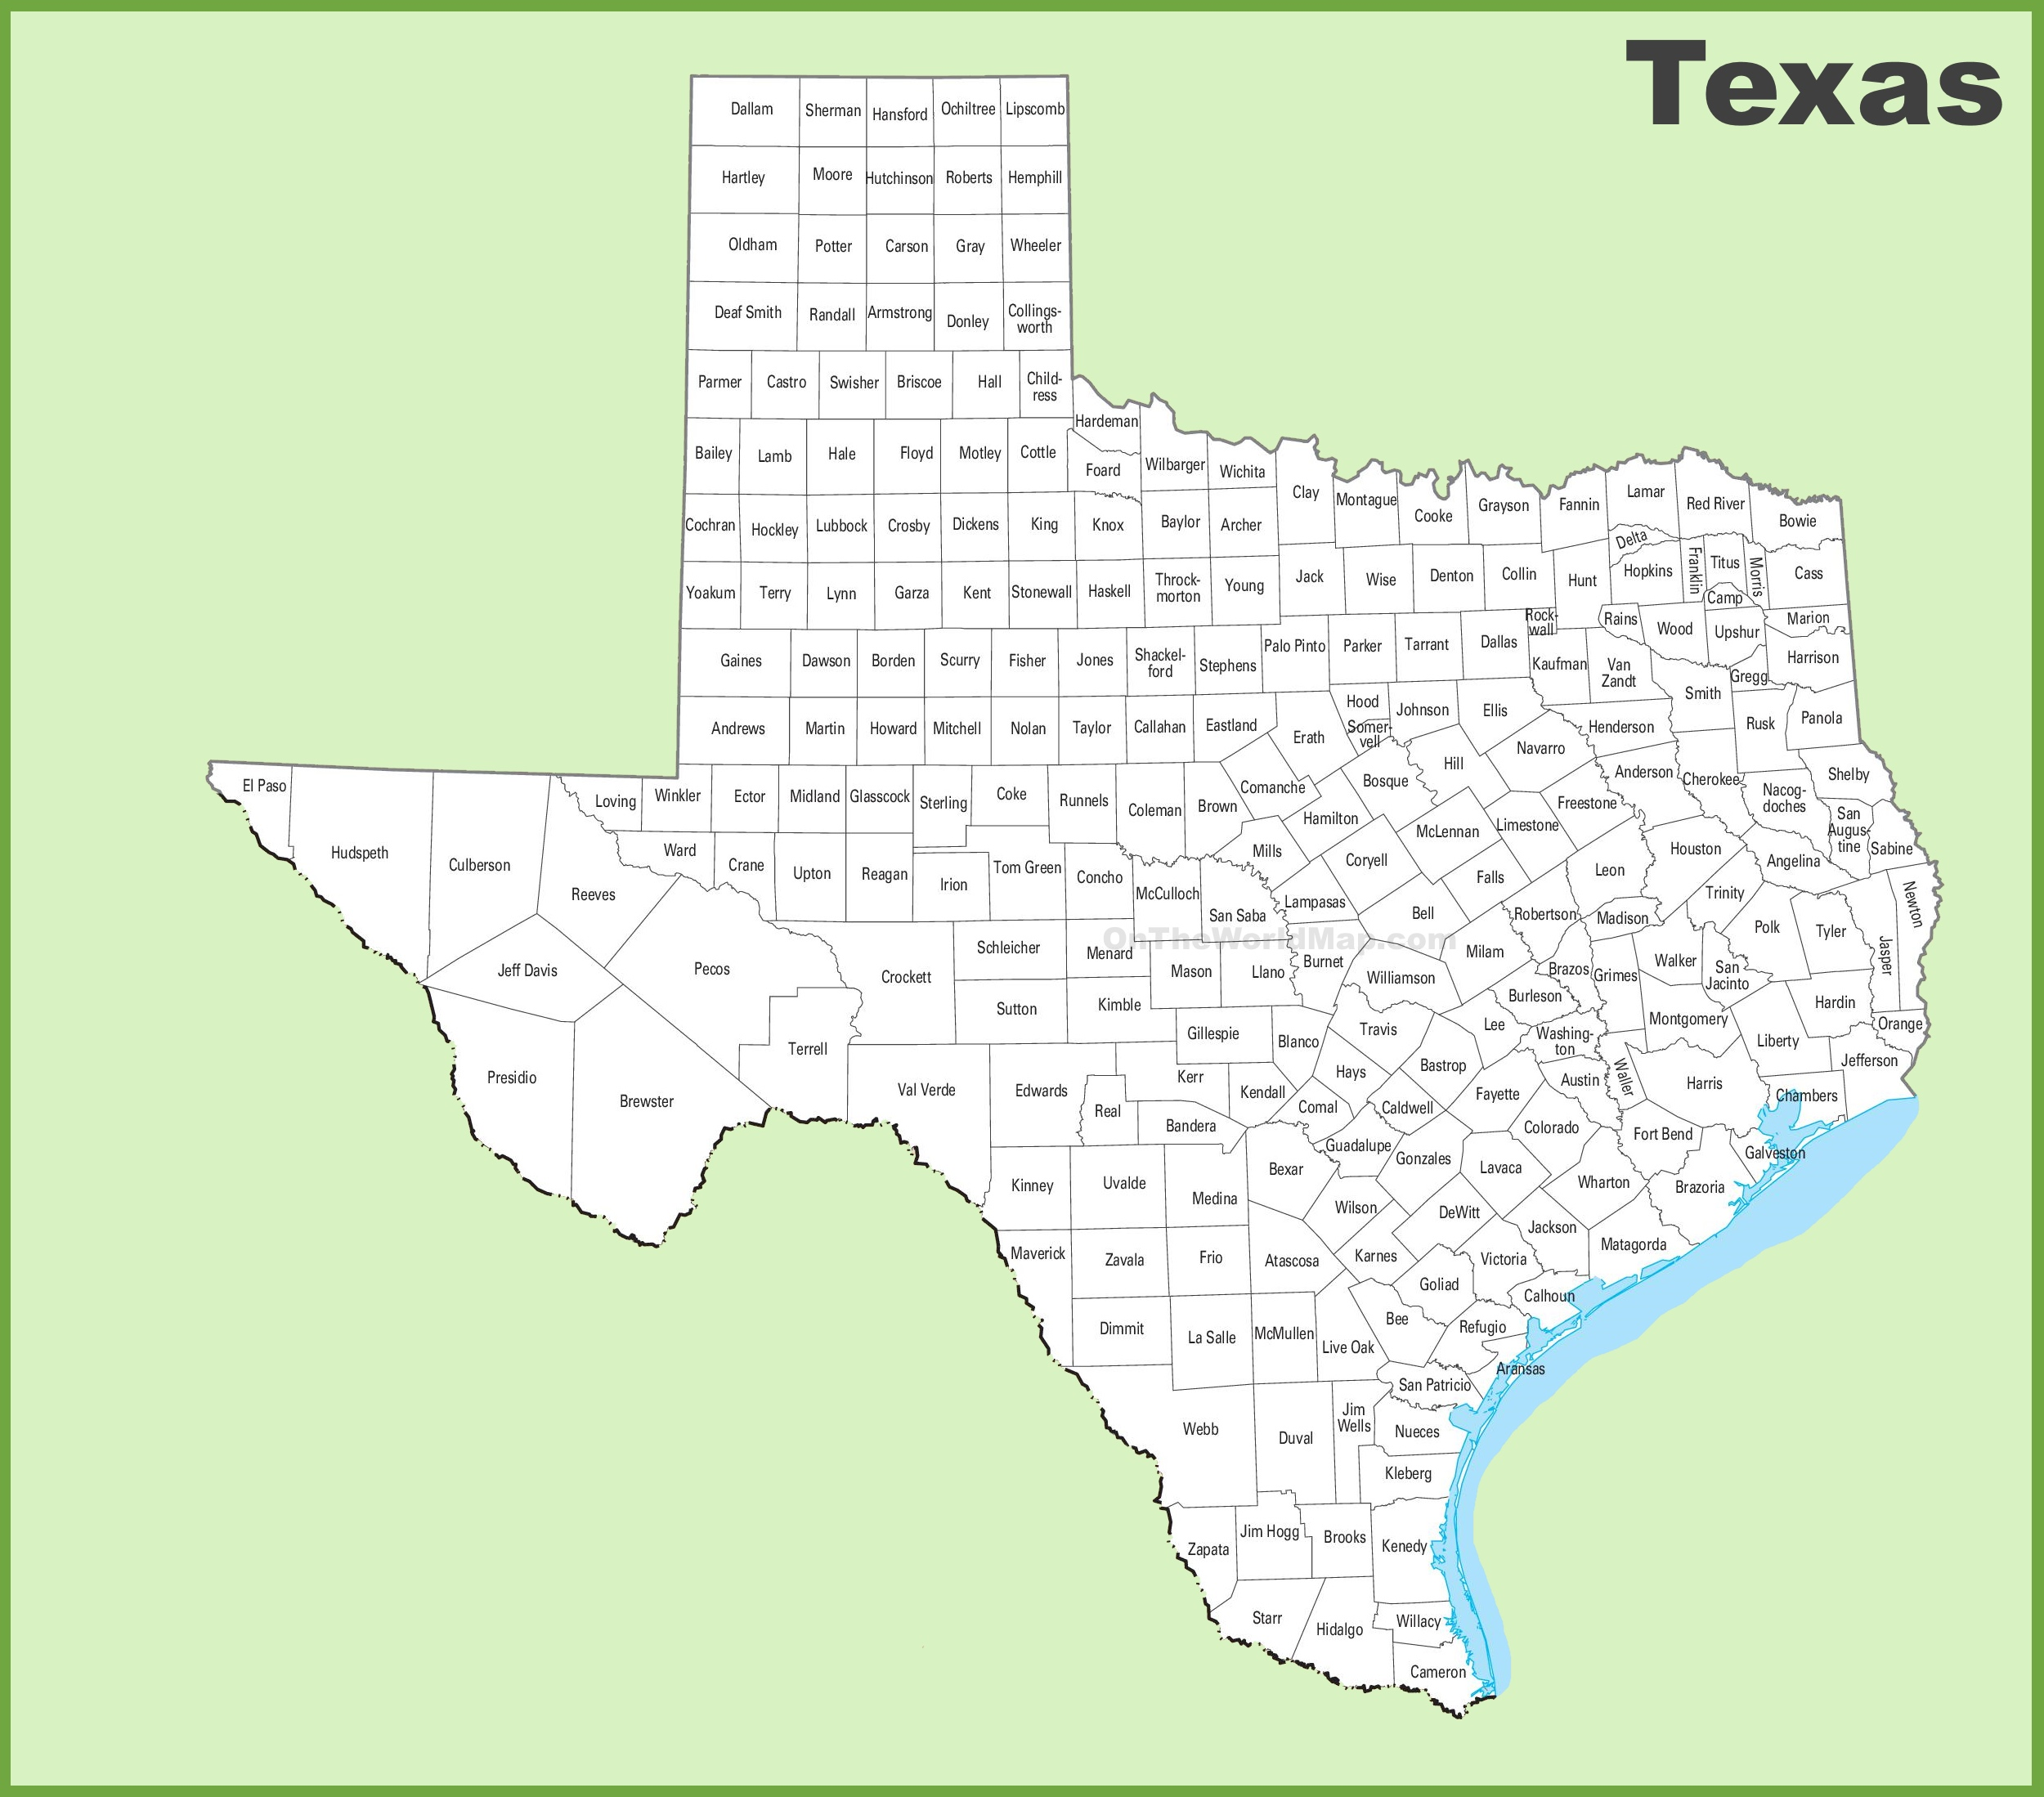 Texas County Map - Map of texas counties